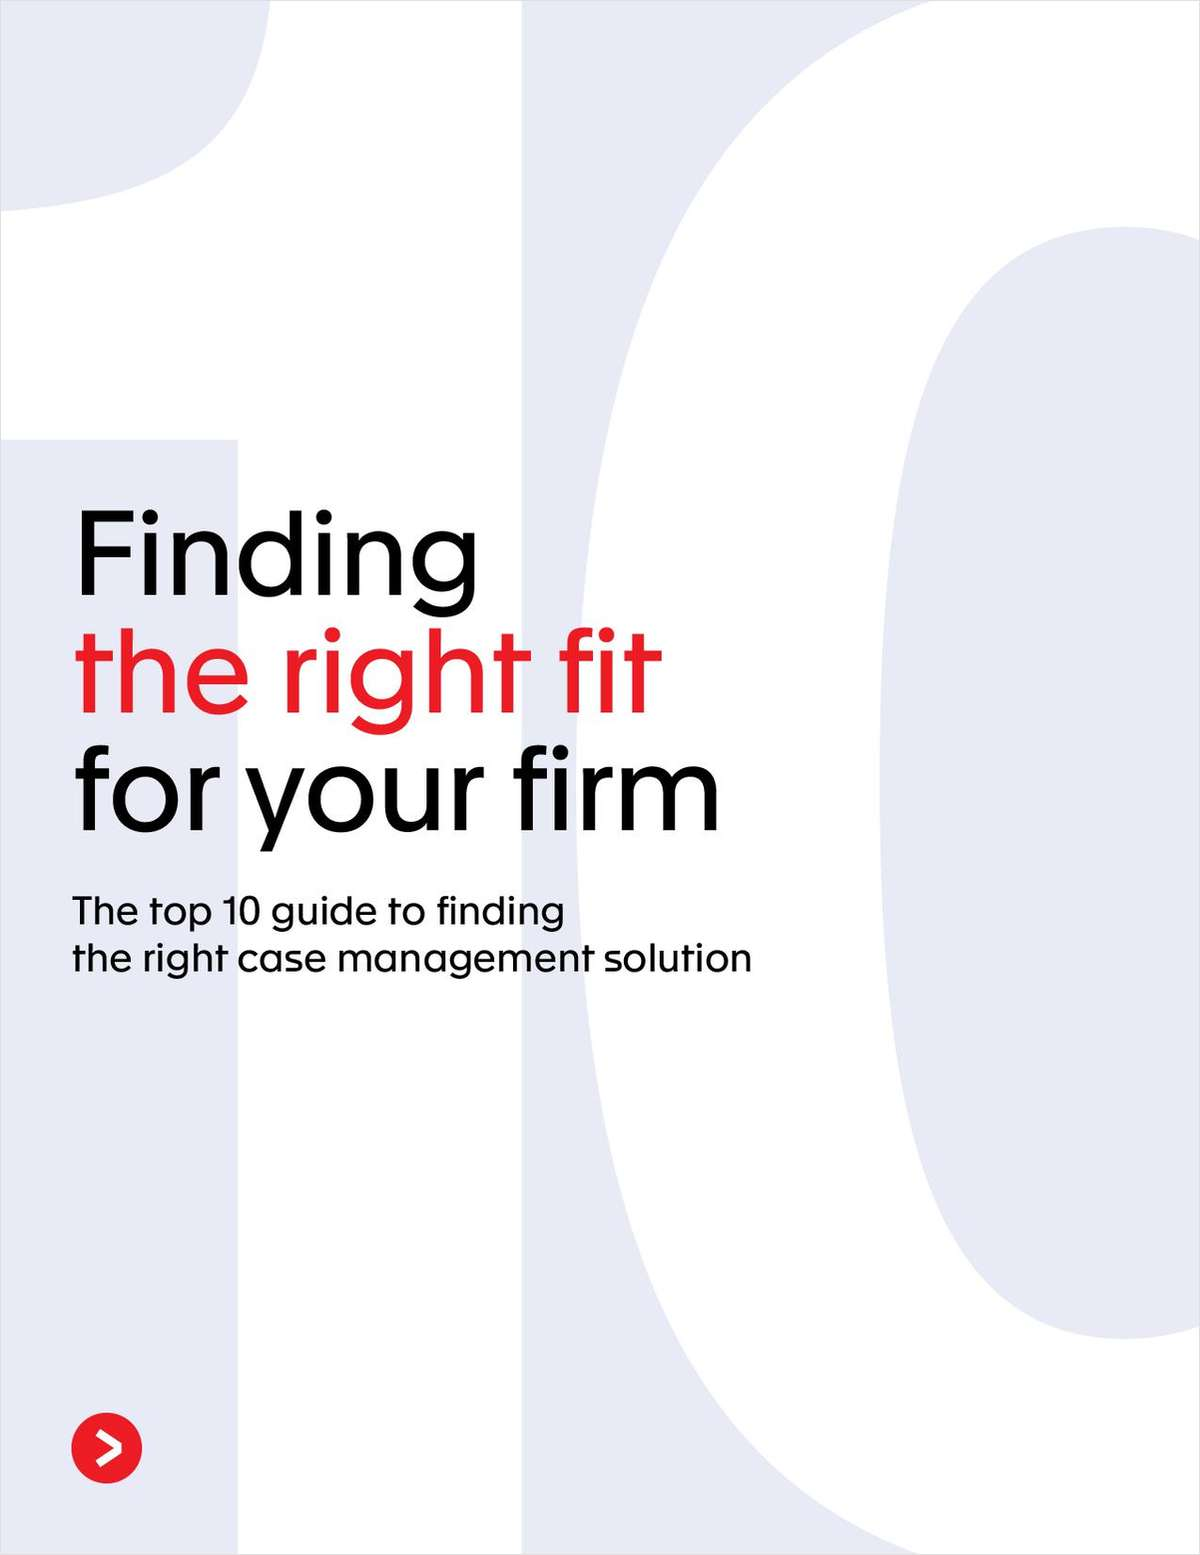 Whether your firm is large or small, your case management system needs to fit your specific needs. This guide outlines the top 10 considerations for finding the right case management software for your firm.